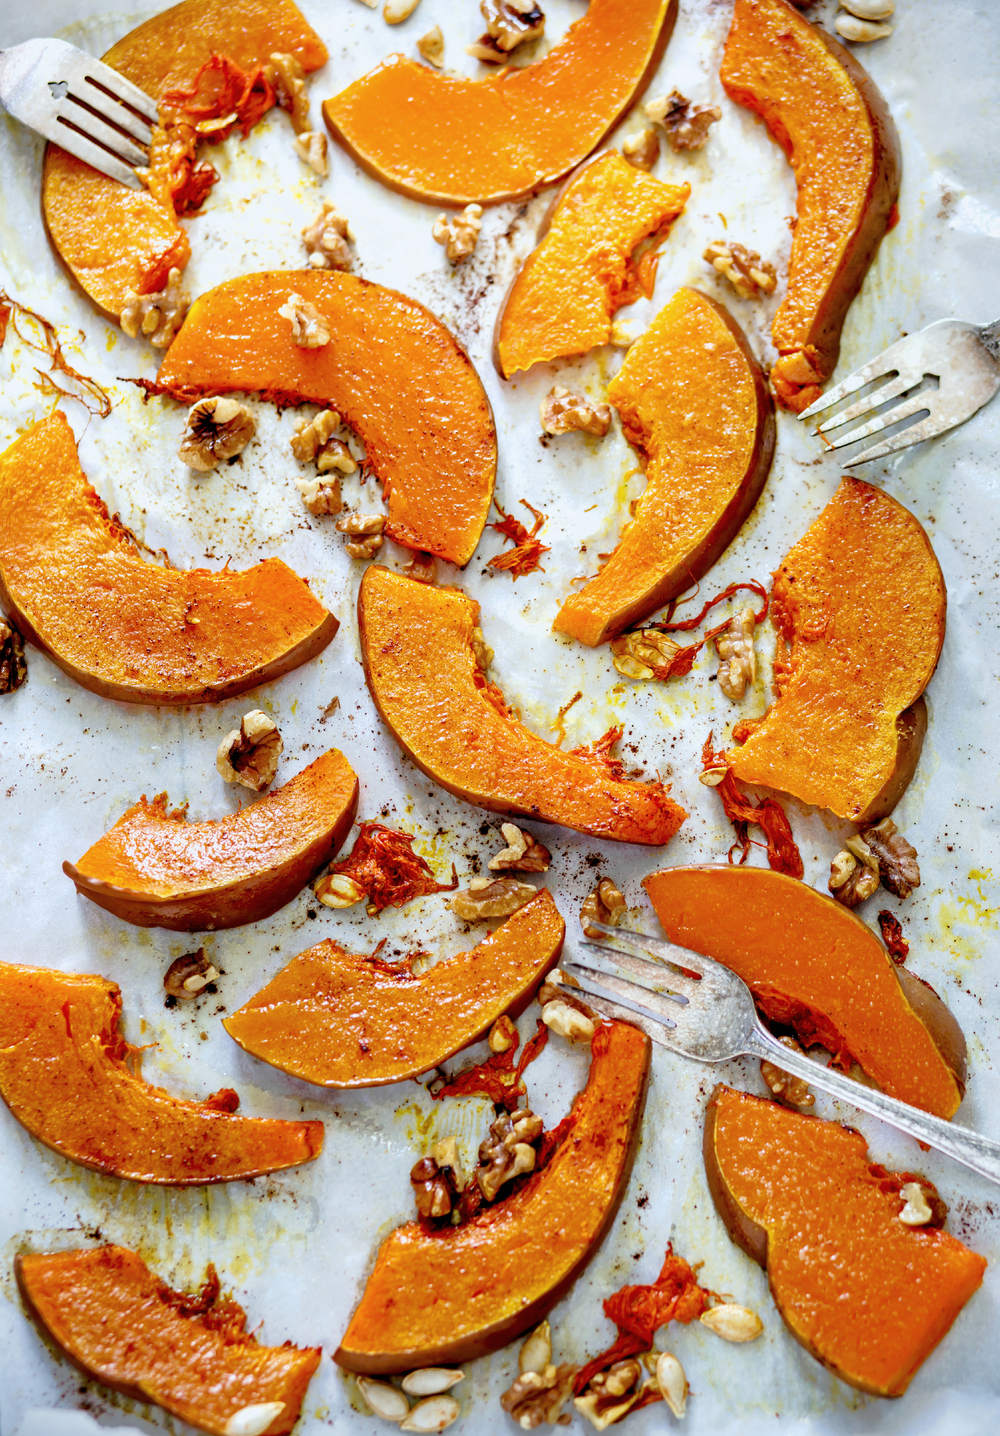 roasted pumpkin with walnuts.jpg